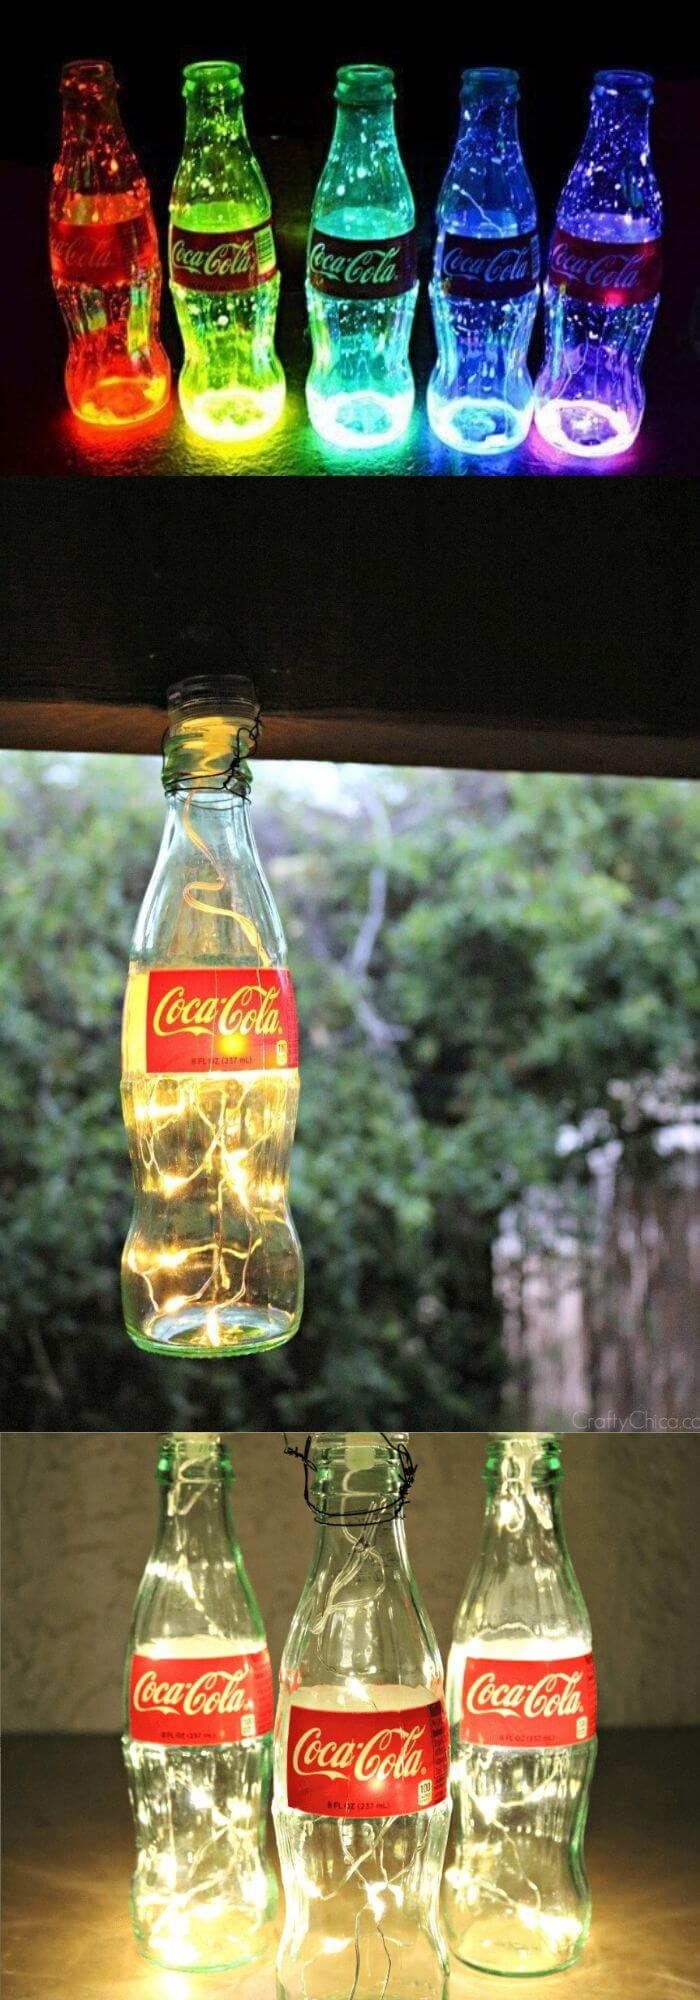 Coke Bottle Luminarias